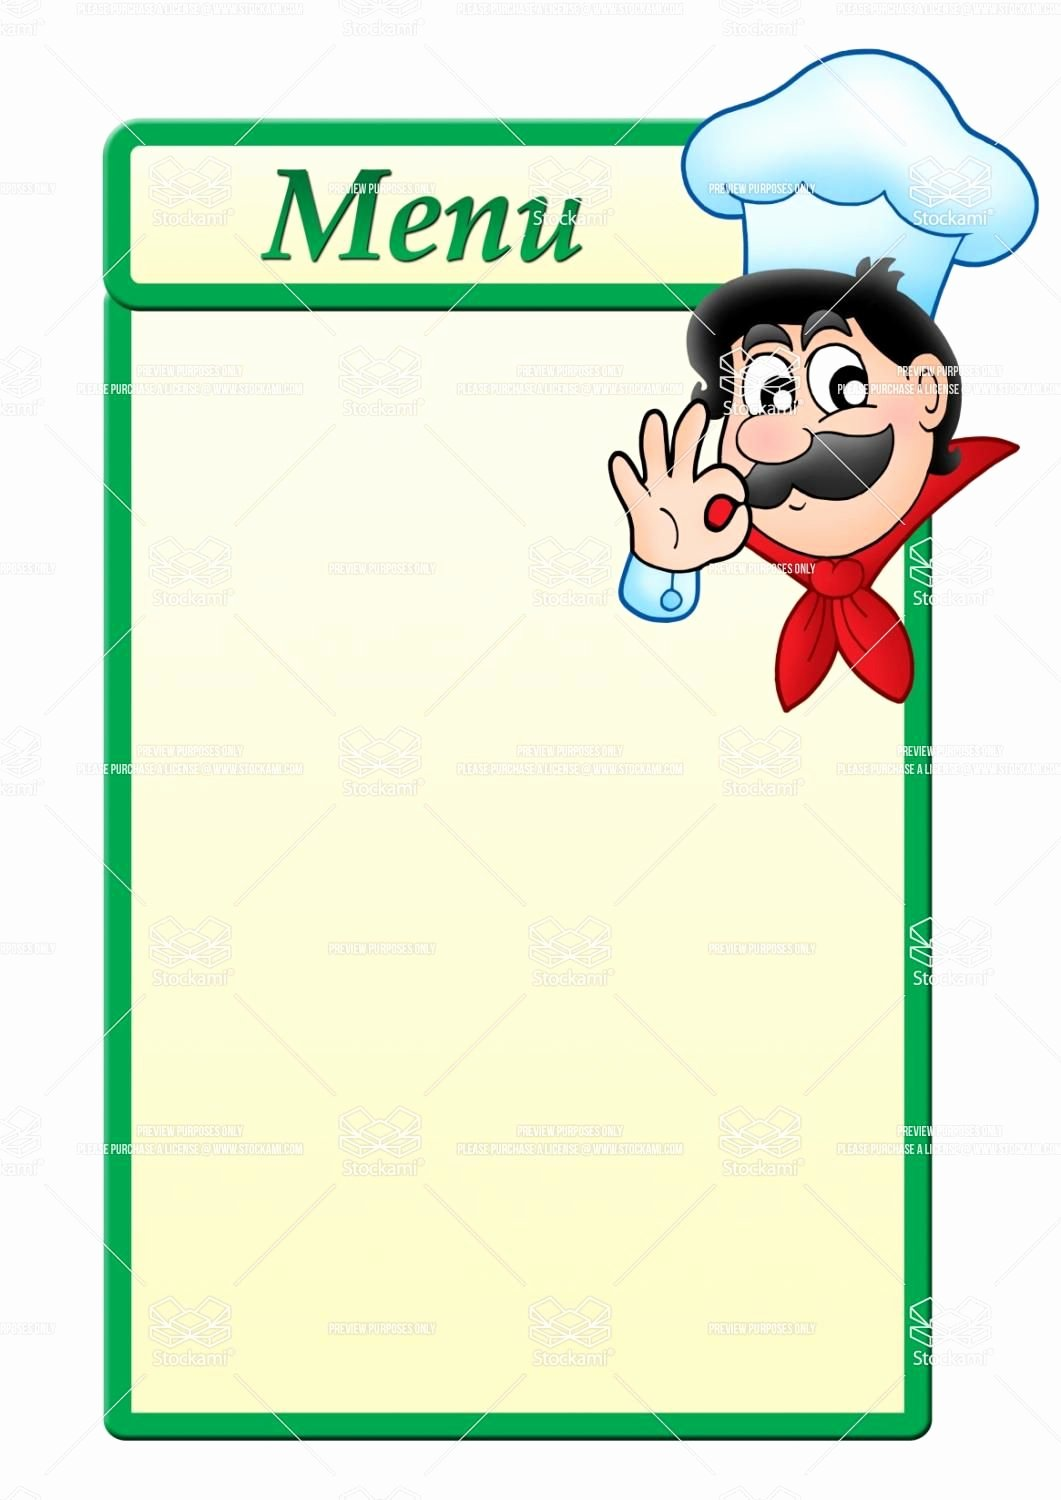 Blank Restaurant Menu Template Lovely Stock Image Menu Template with Cartoon Chef 1 061